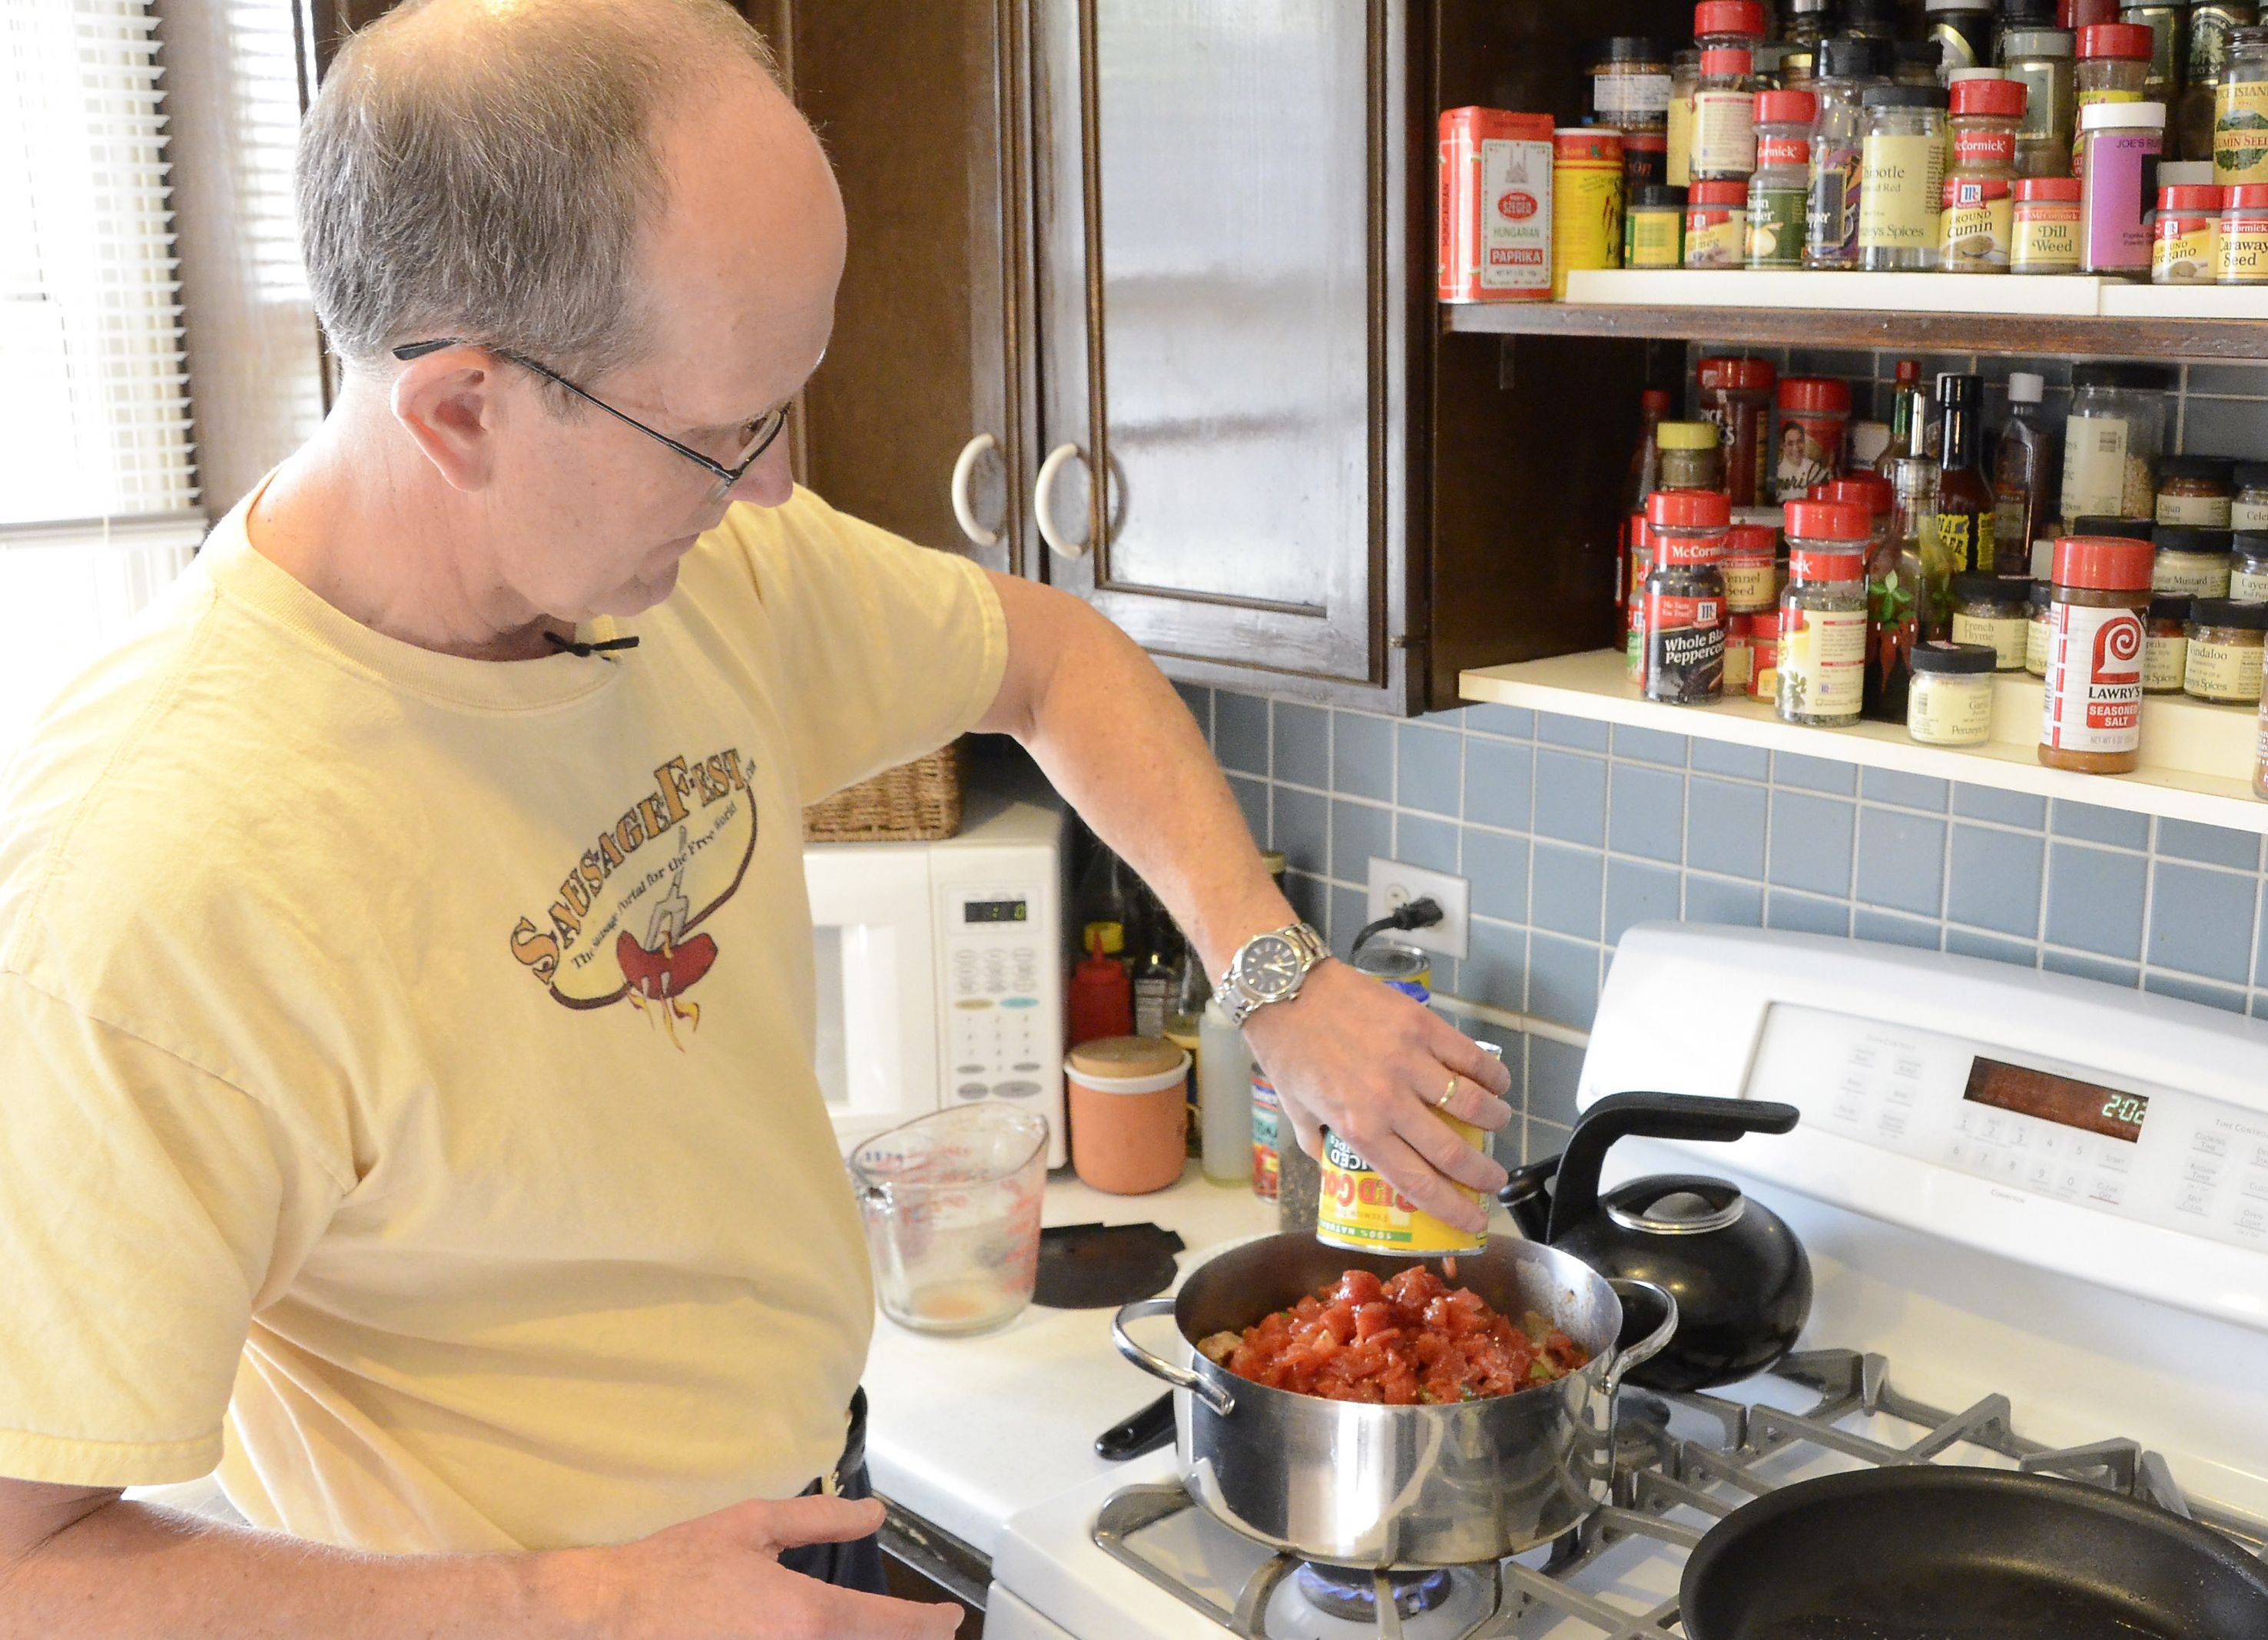 Kent Kleiva adds chopped tomatoes to his three-sausage chili. He prefers a chunkier consistency over a soupier texture.